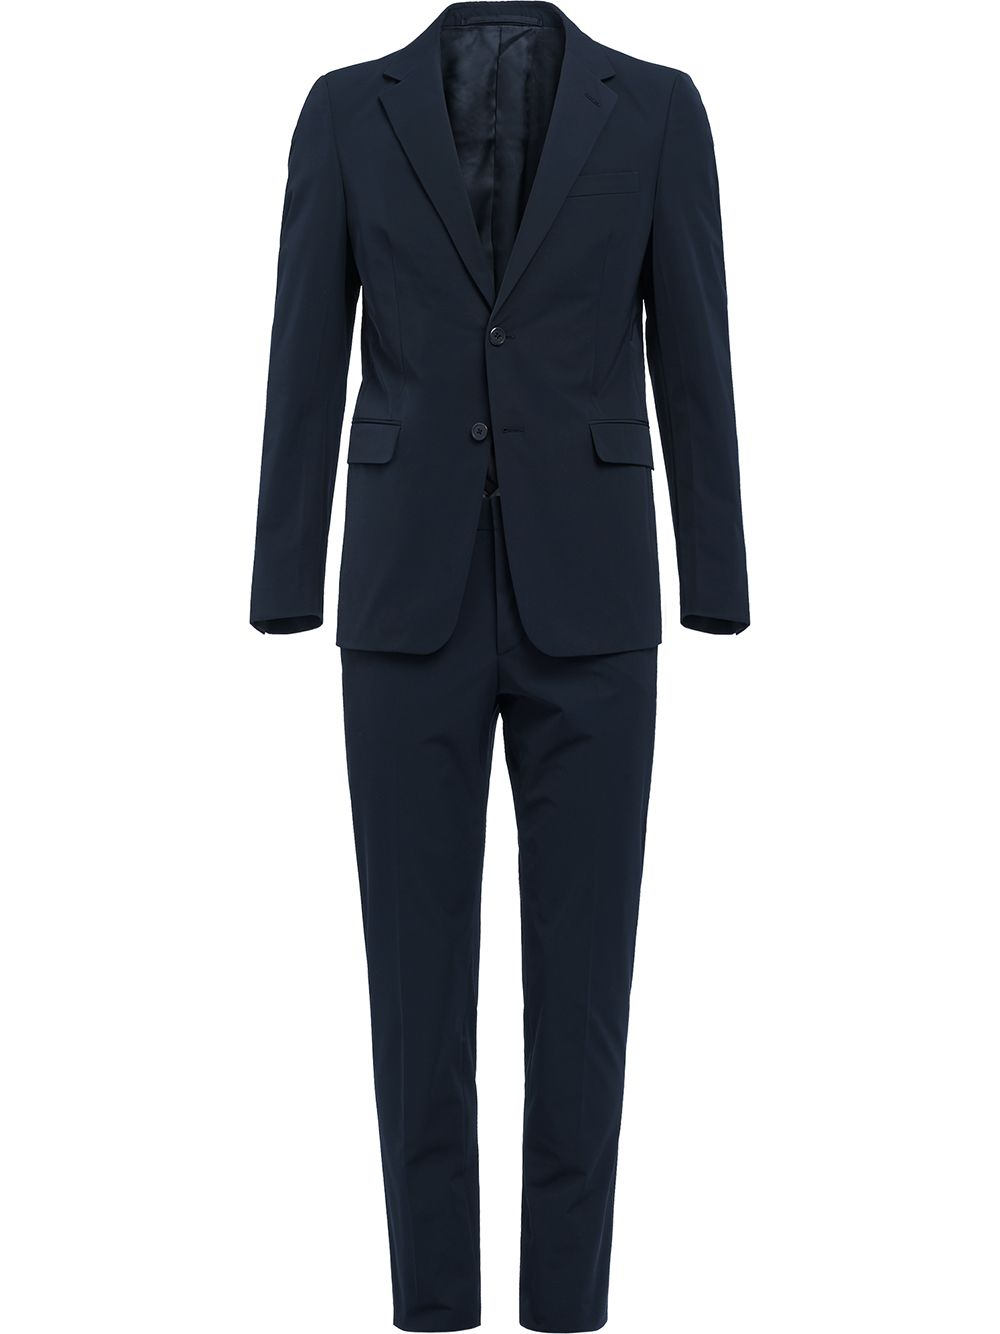 Prada single-breasted suit - Blue von Prada